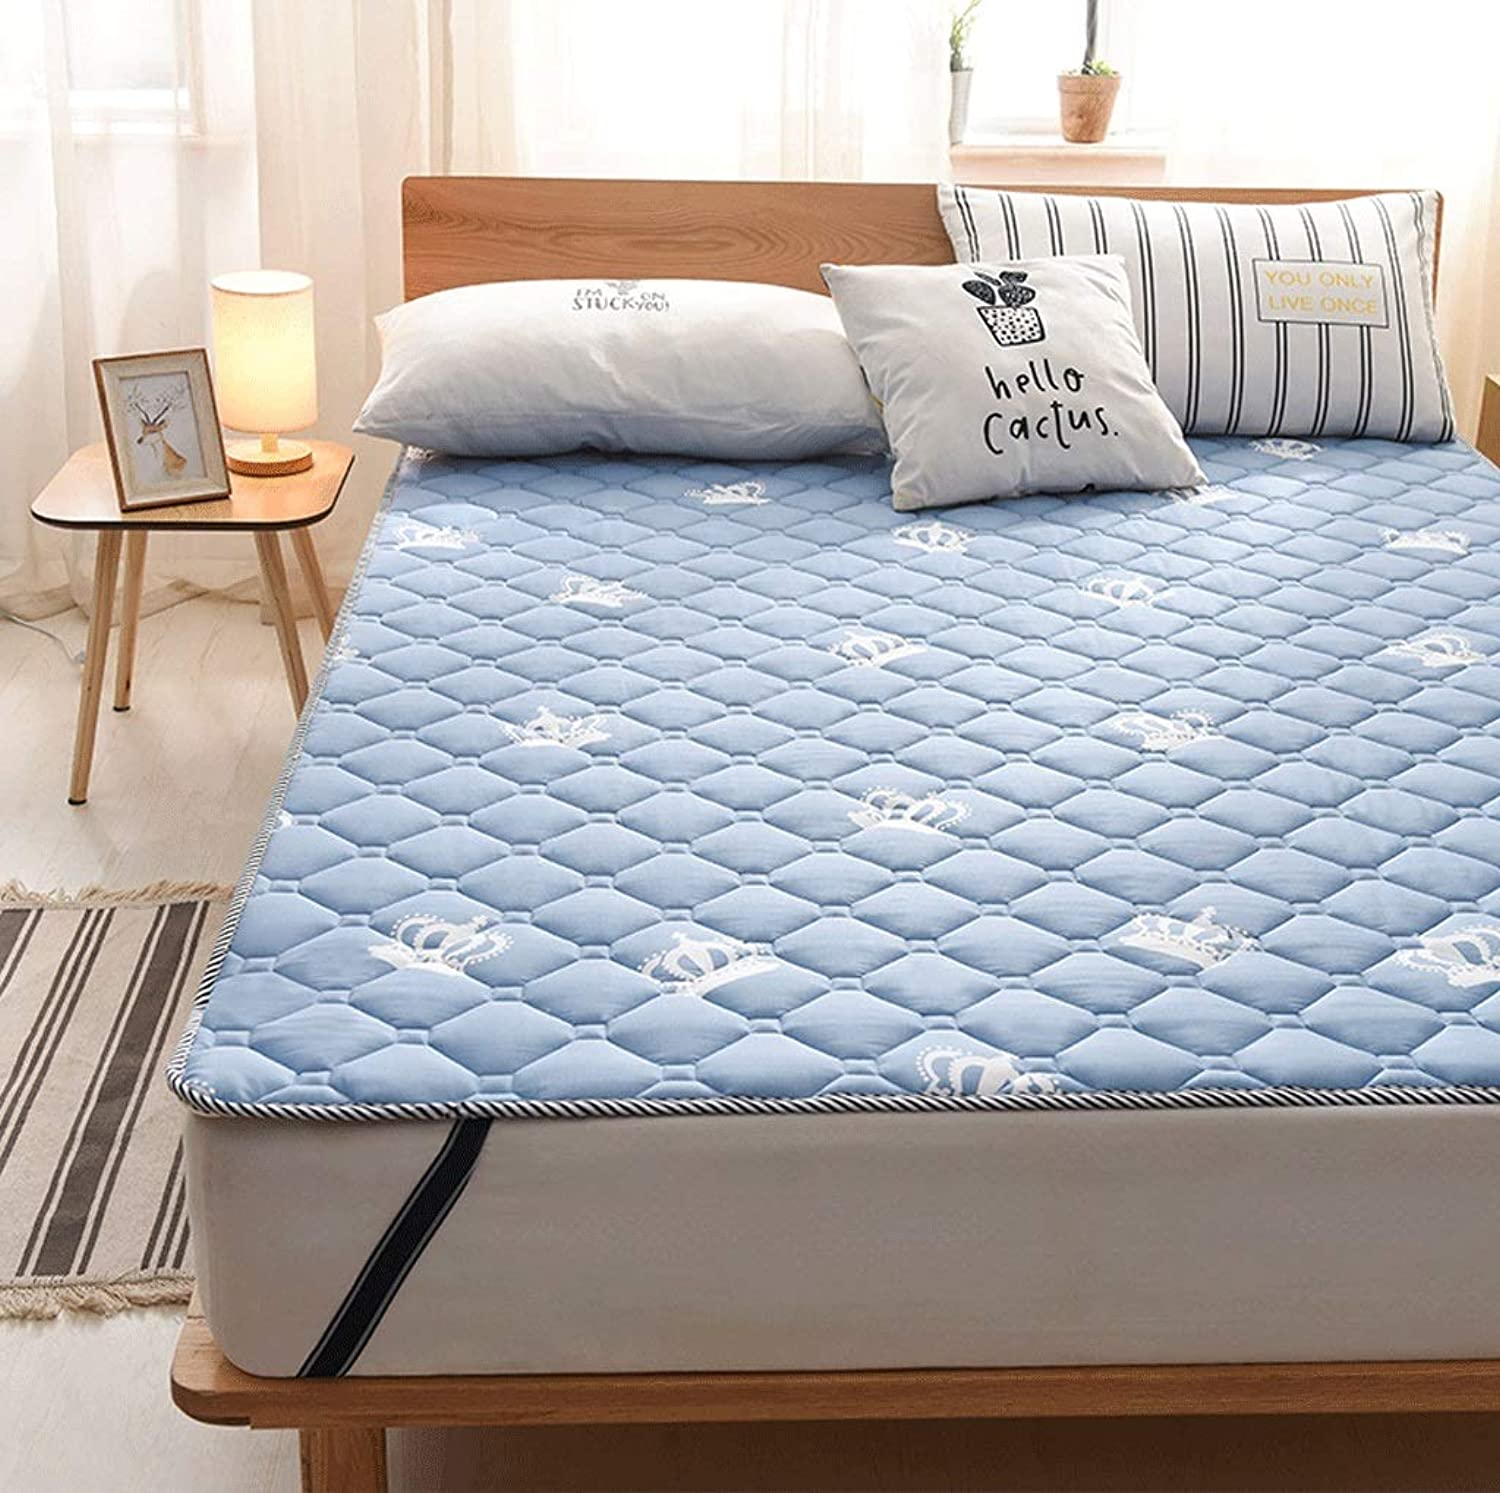 Washable Cotton Mattress, Thin Non-Slip Mat Cushion, Foldable Student Dormitory Bed G (color   C, Size   120X200cm)